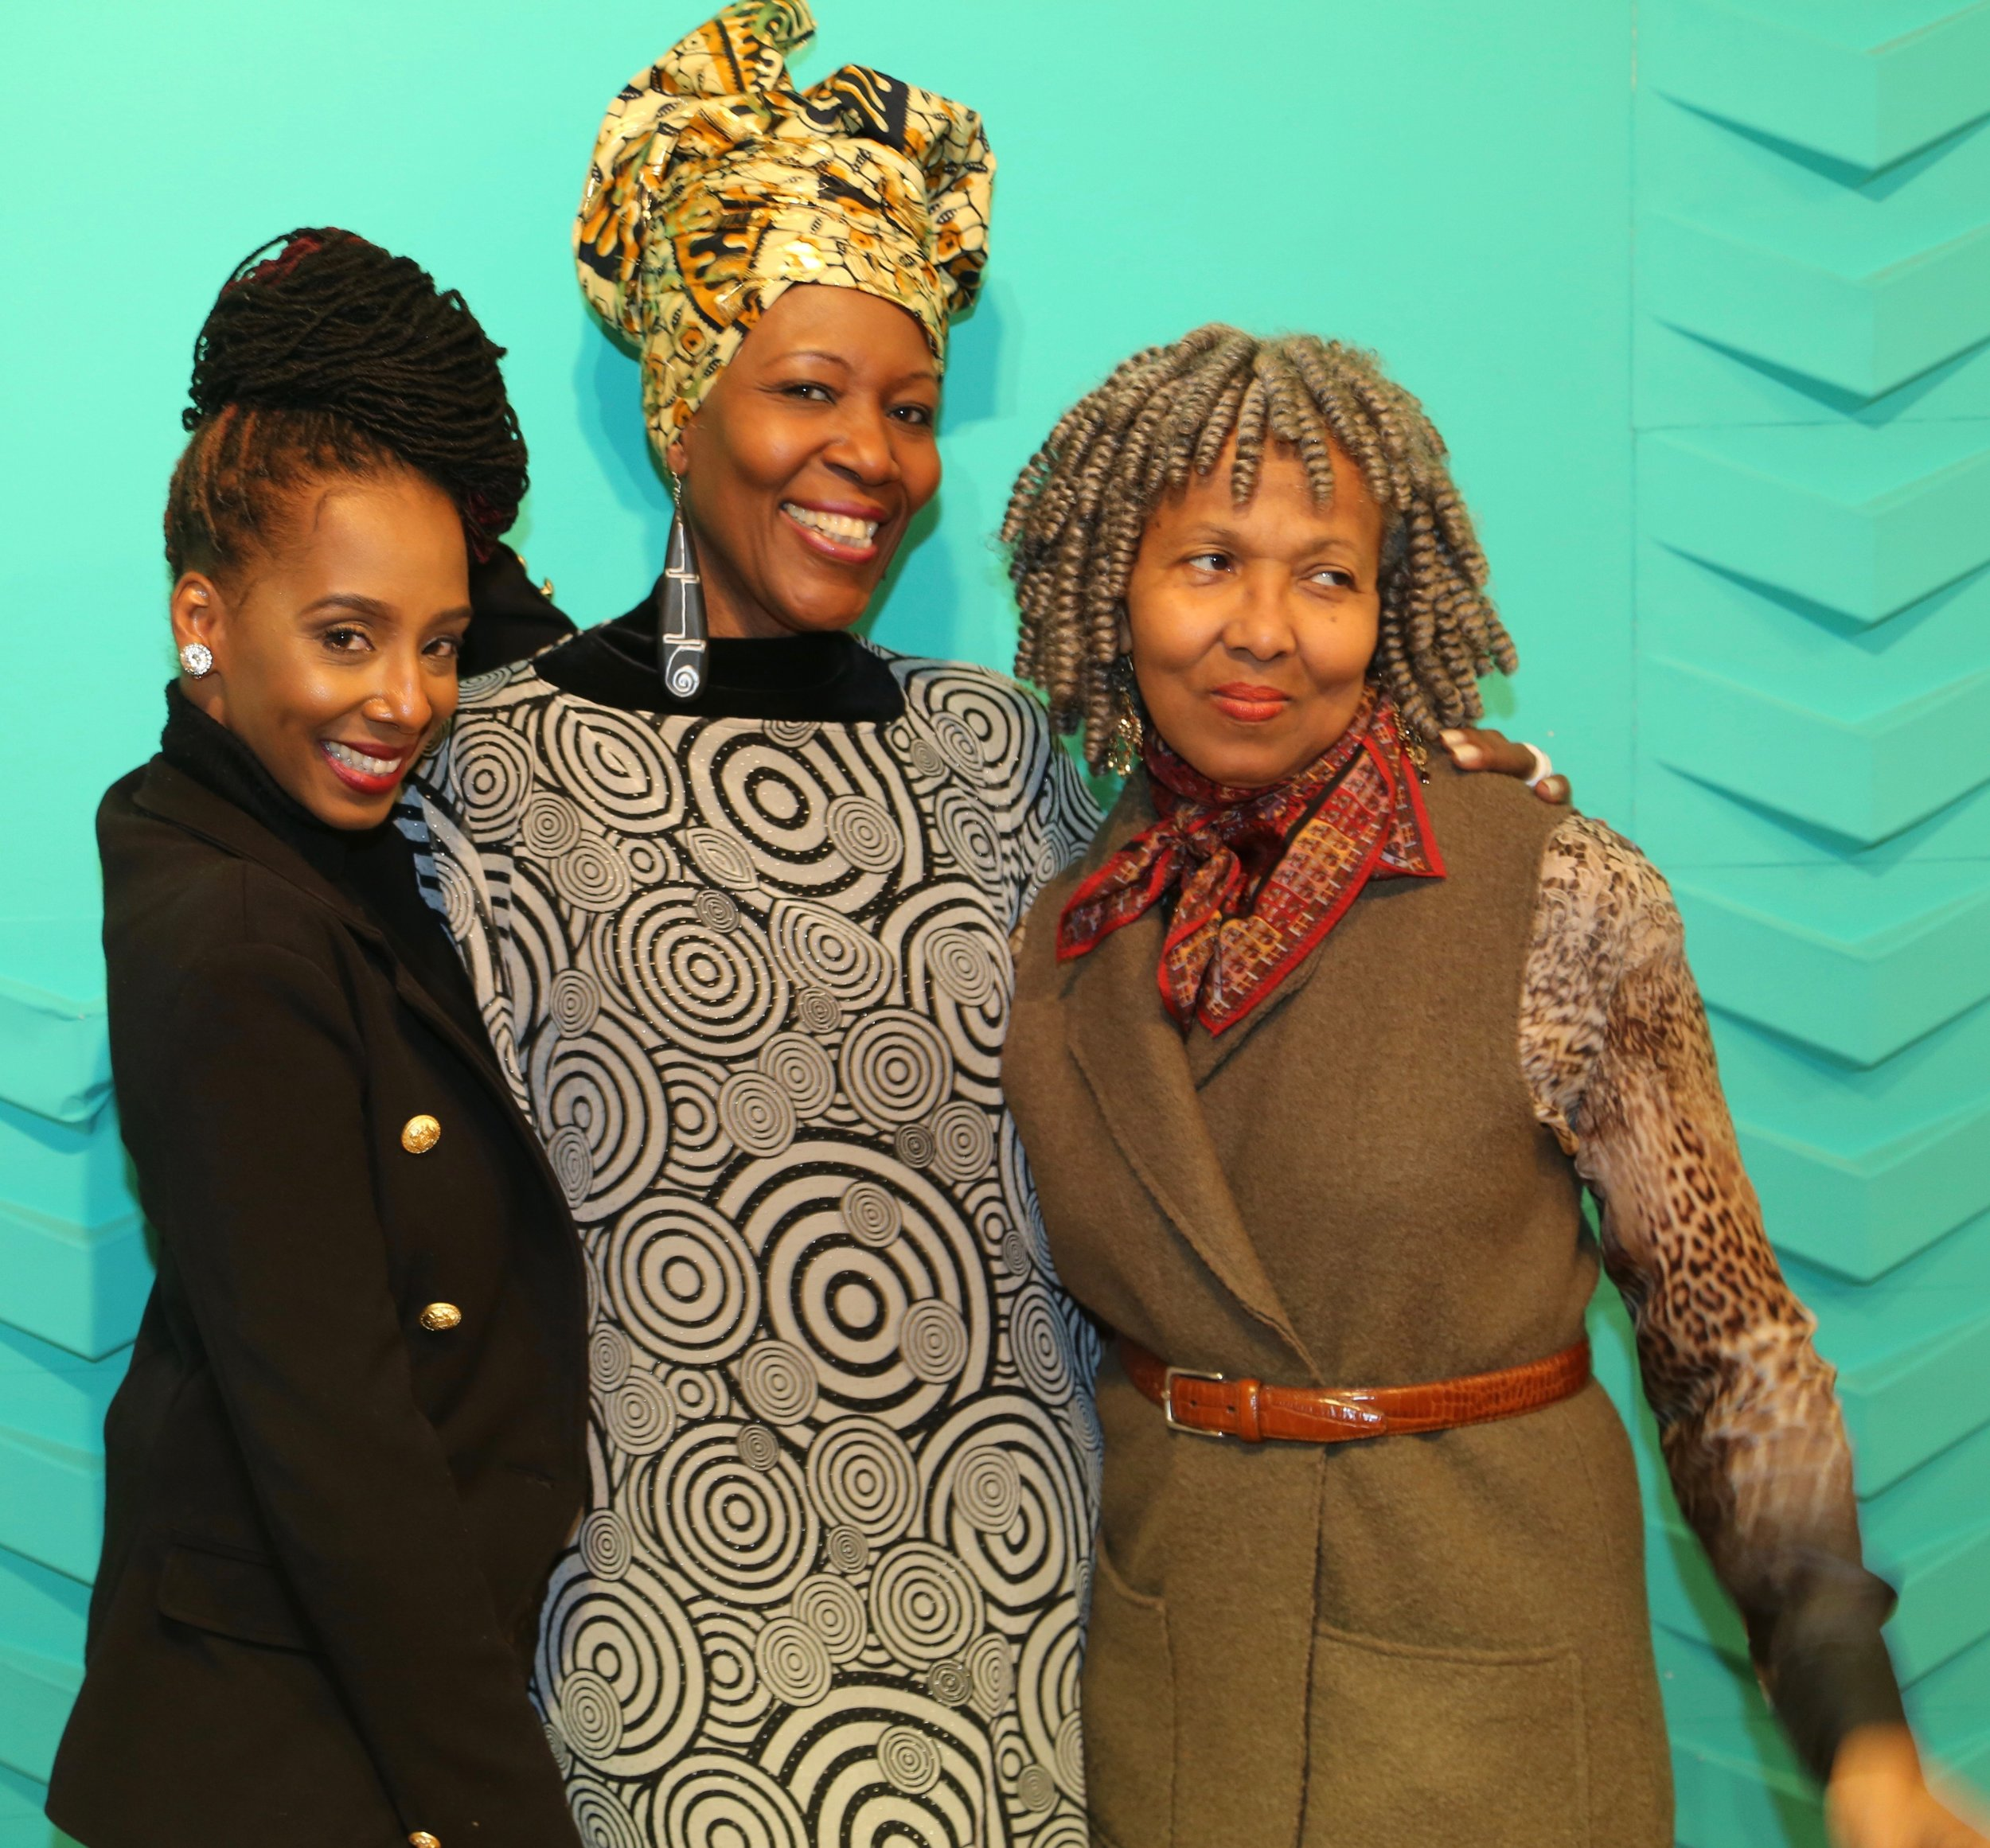 CAFE @ NYFW - JLC with designer OliviaB, Cayman Islands and Dianne Roberts, Esq.